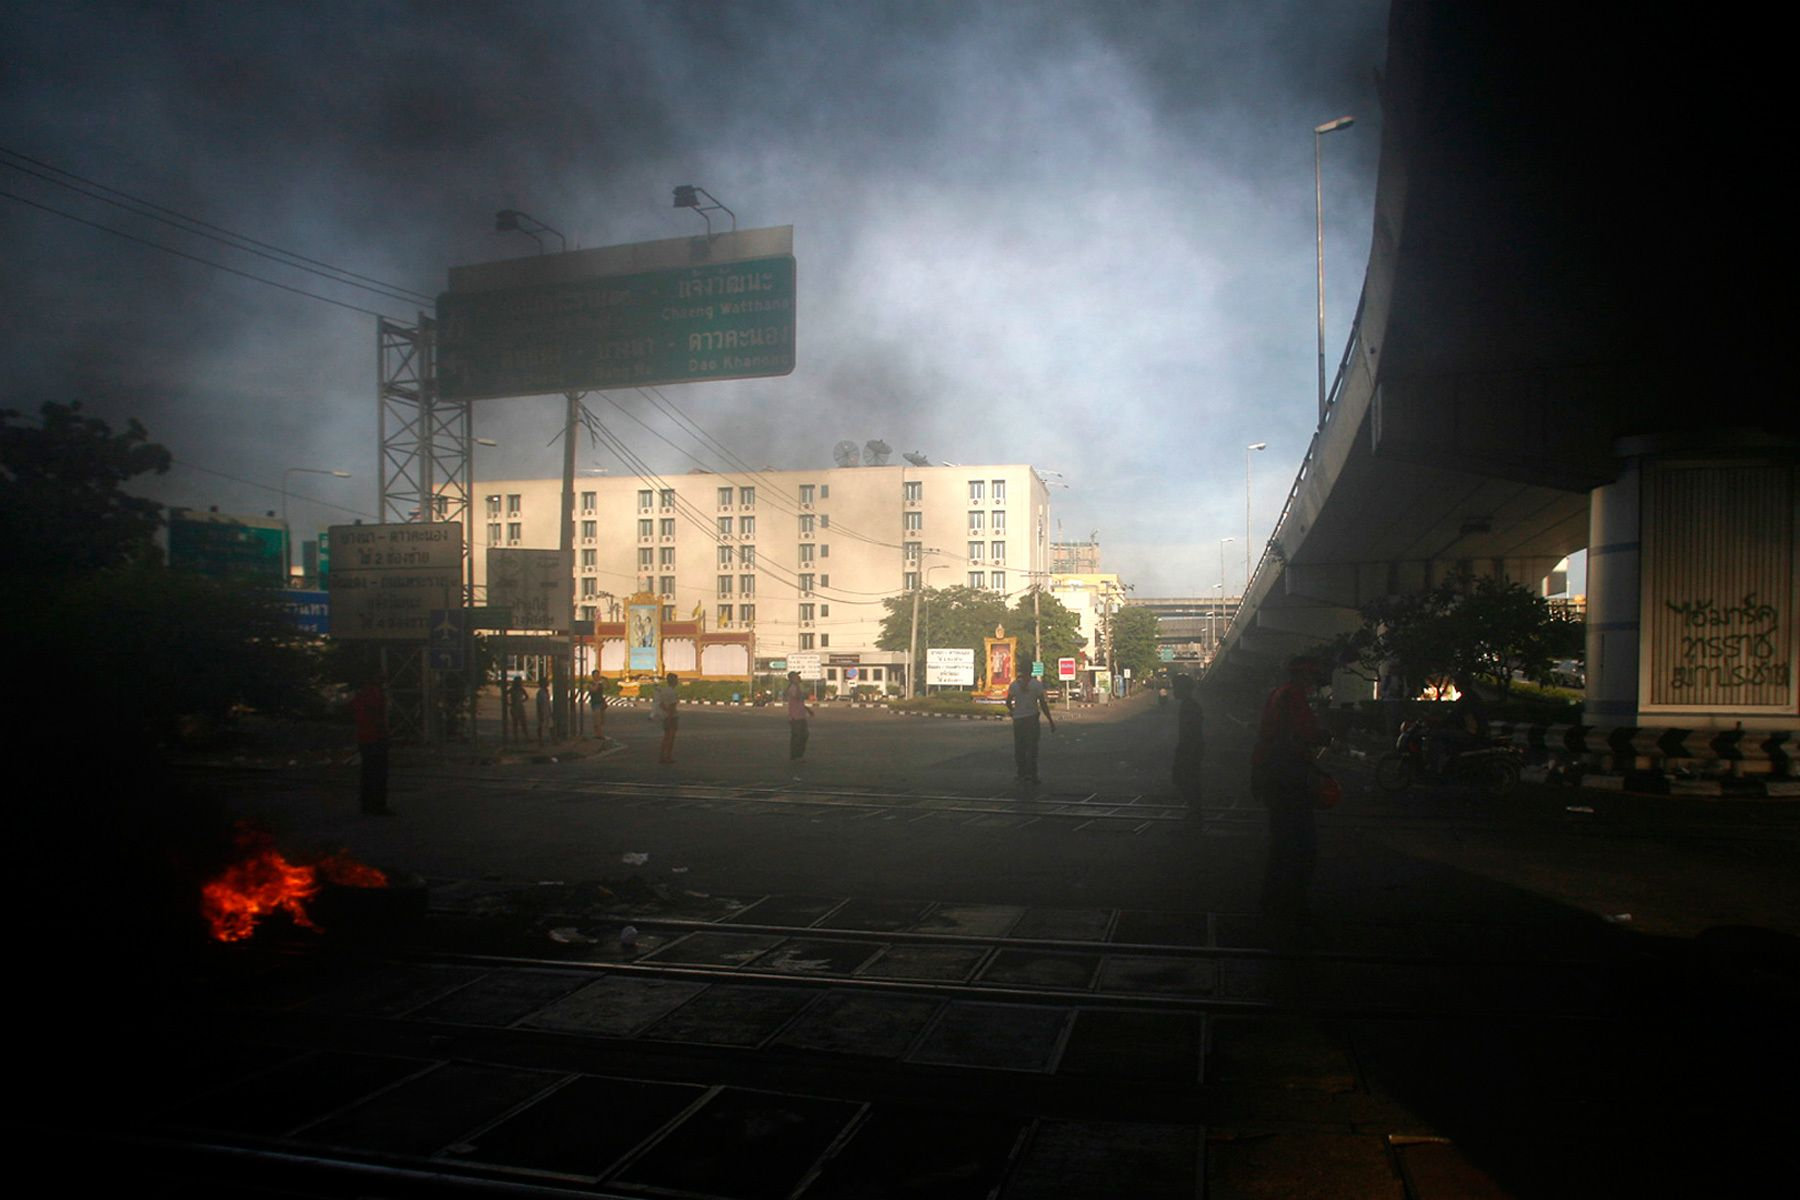 A scene at central in Bangkok.April 2009